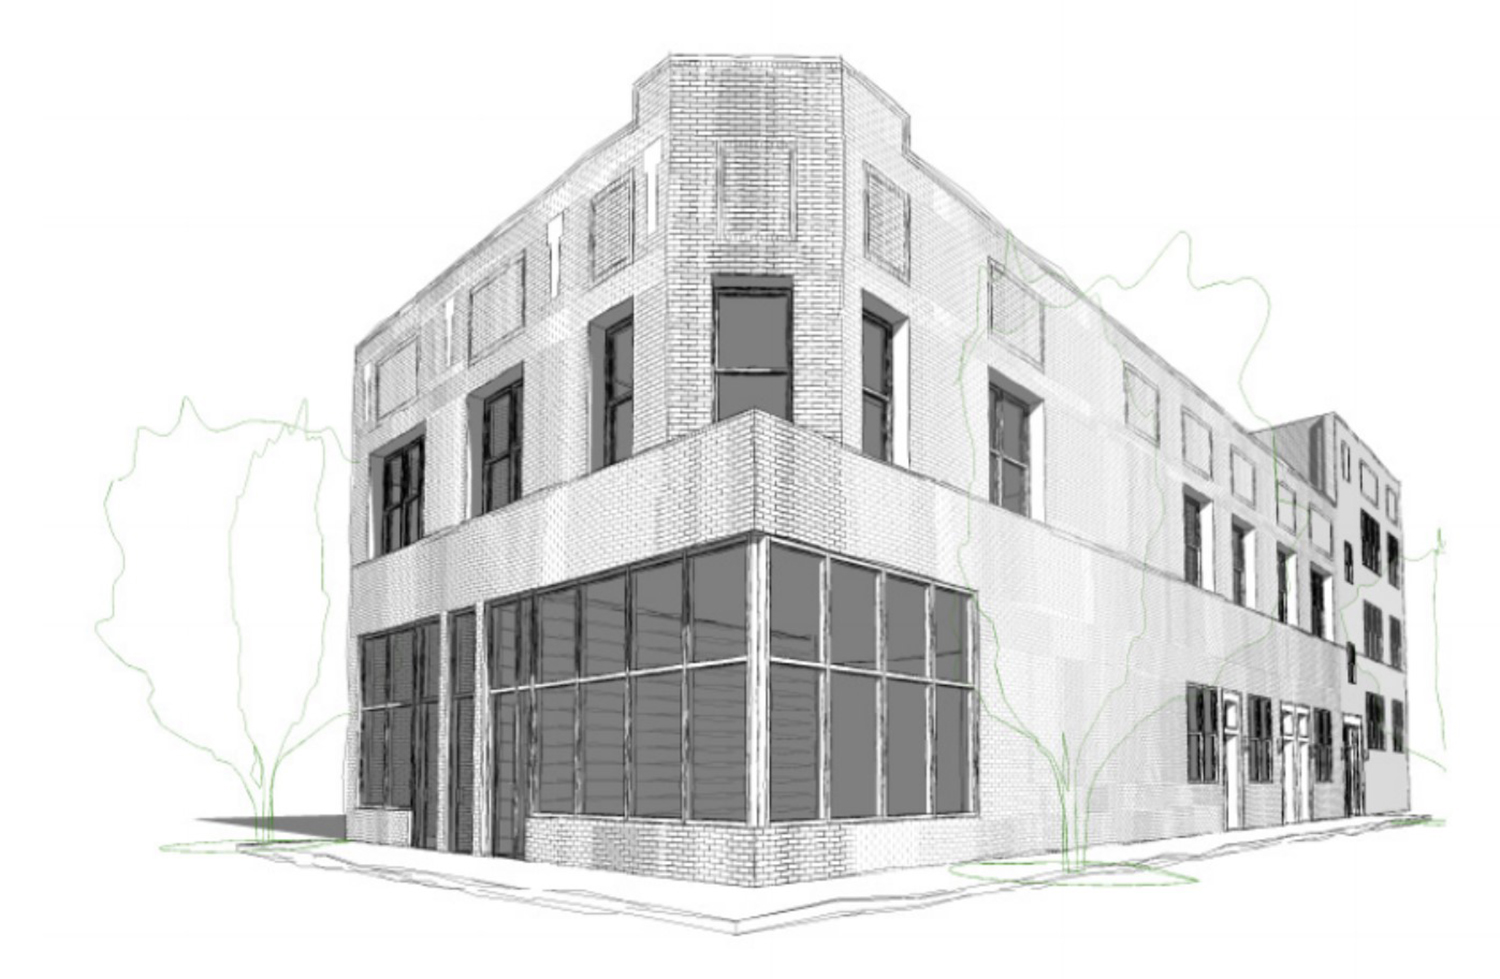 2901 N Milwaukee Avenue. Rendering by Tri Homes Today